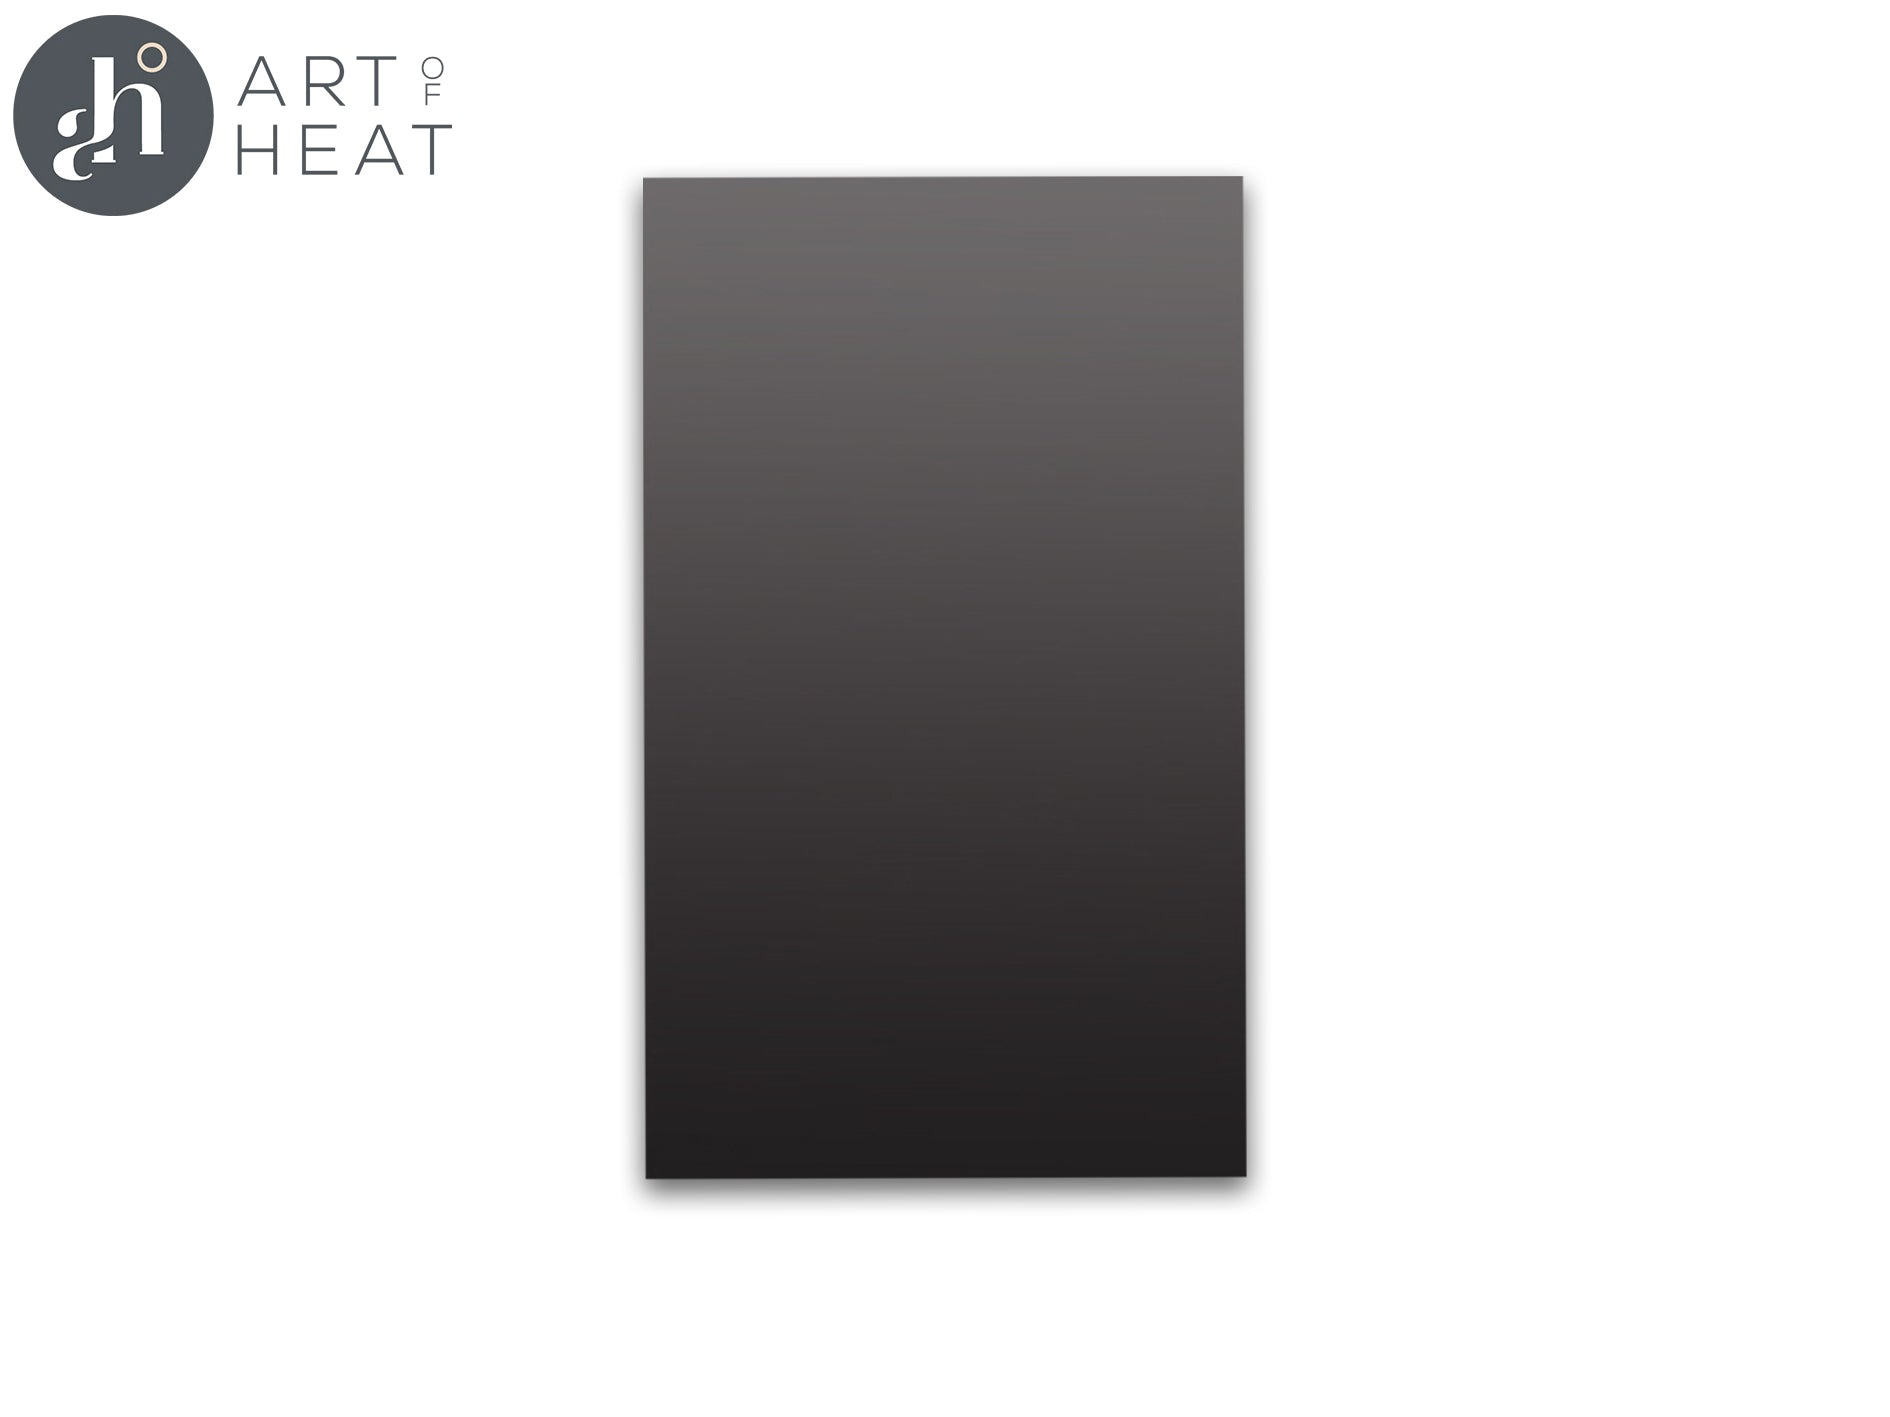 Geneva Series Acrylic Panels - Price Includes Packaging & Delivery